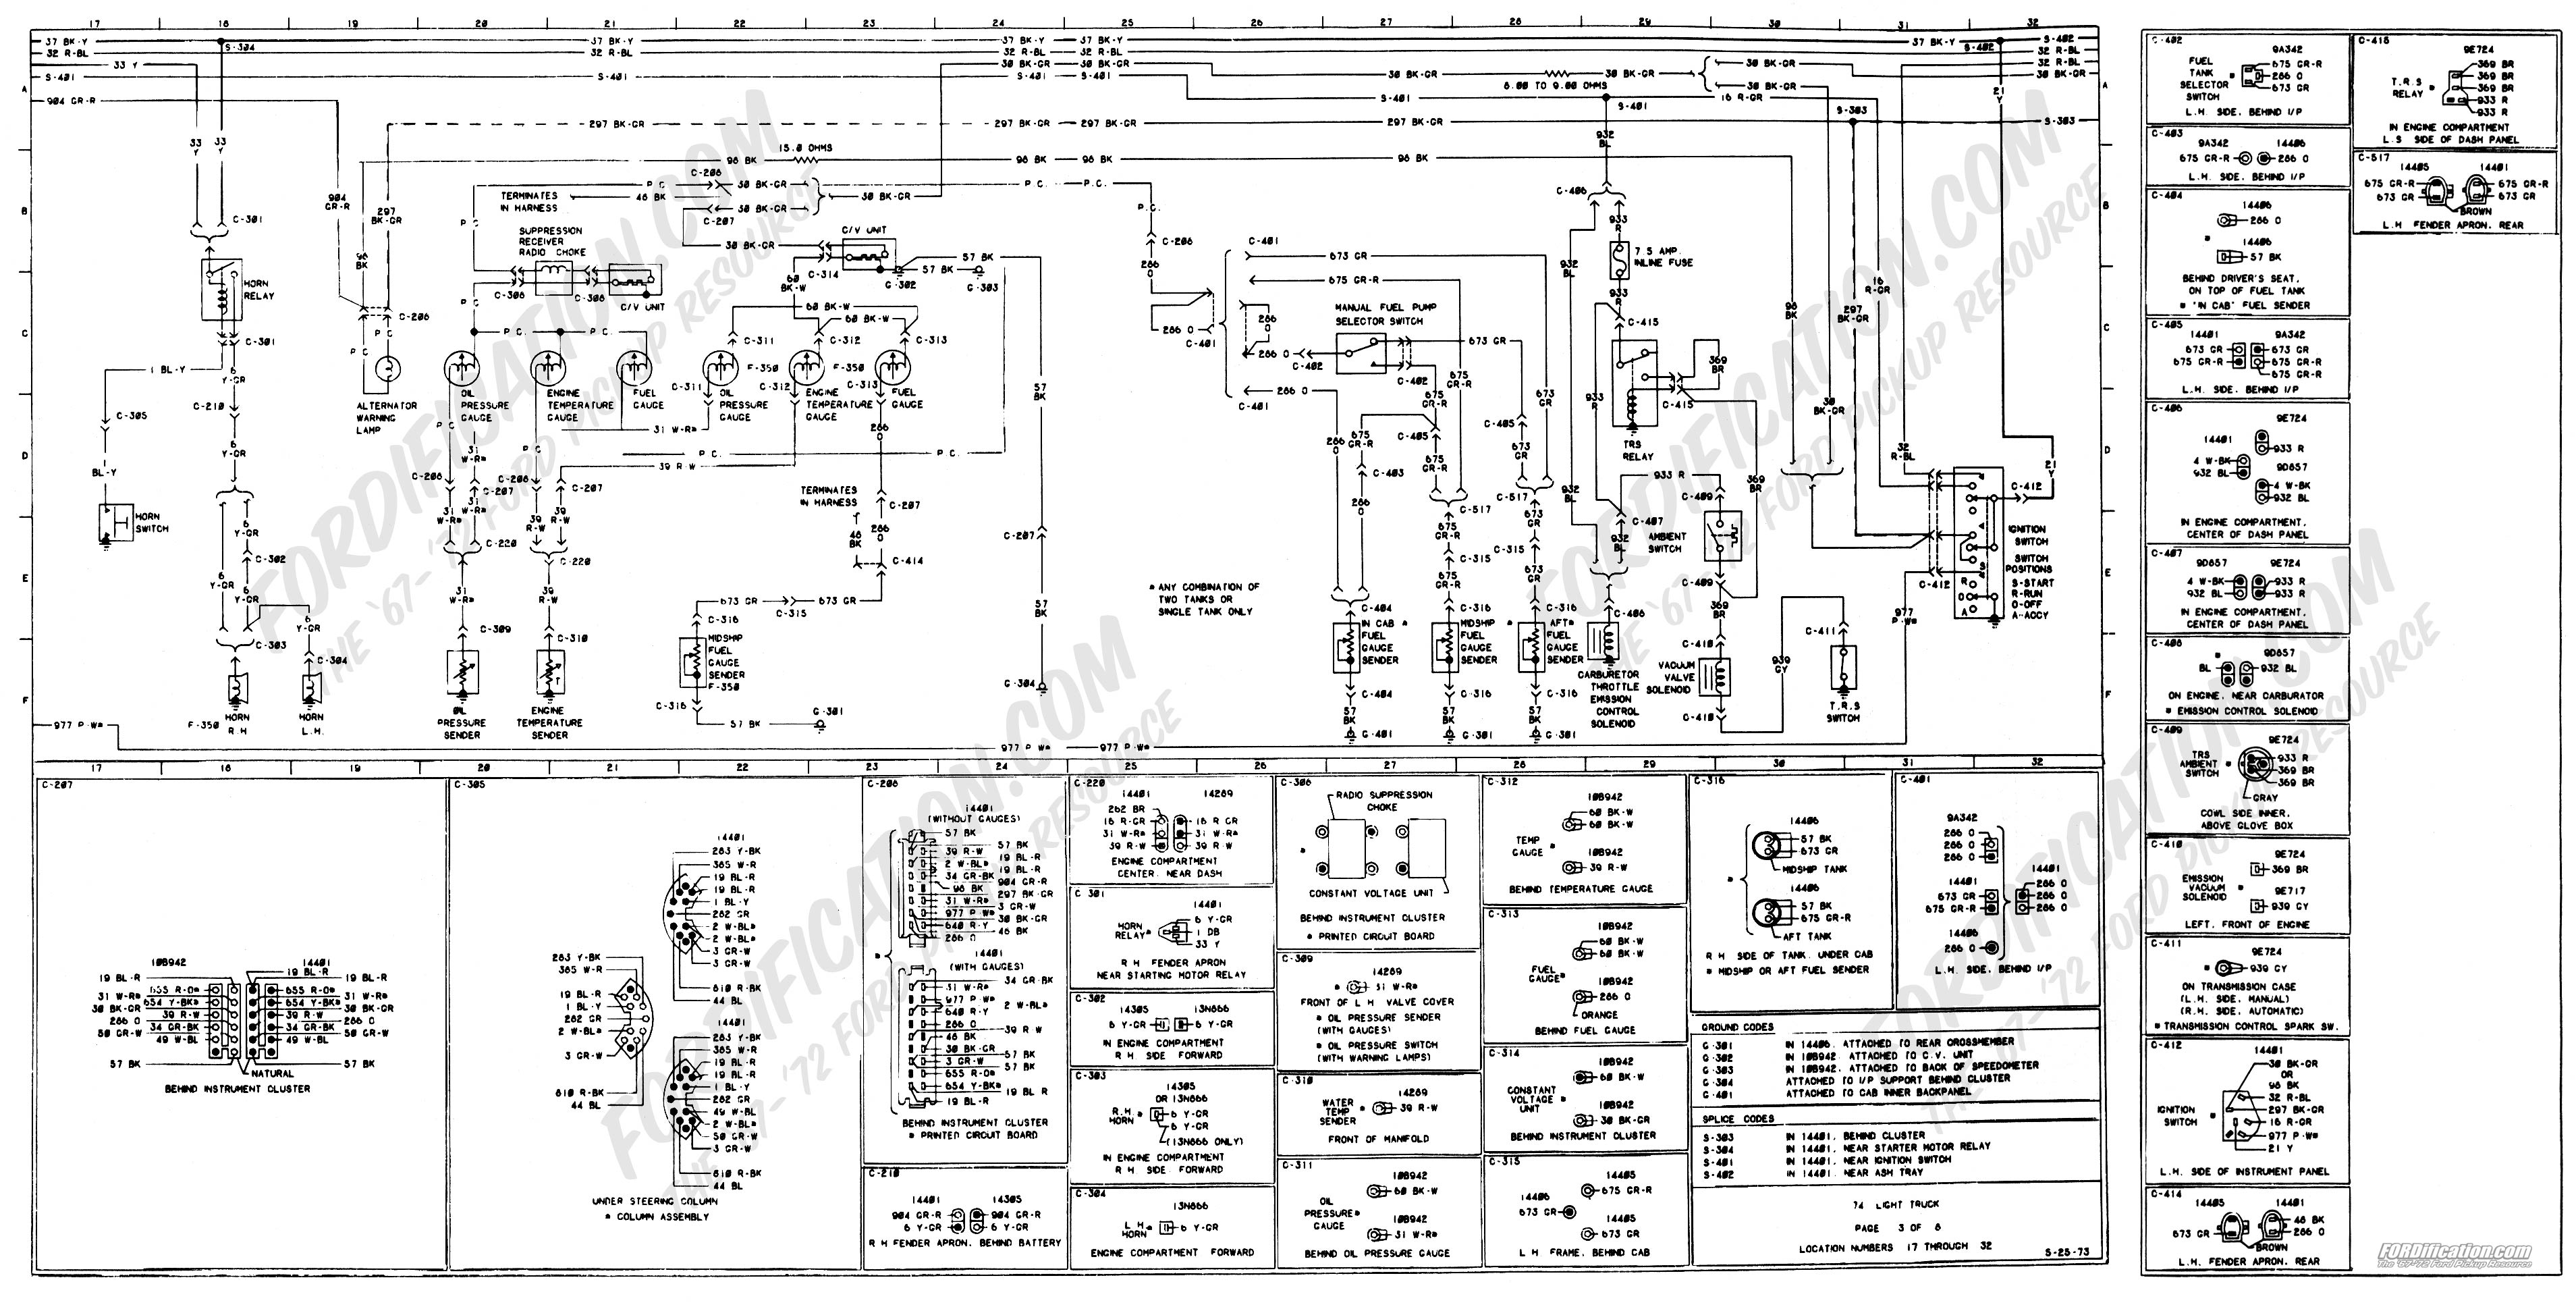 1974 F250 Wire Schematic | Online Wiring Diagram  Ford Transit Connect Wiring Diagram on 2014 ford f150 wiring diagram, 2013 ford focus wiring diagram, ford headlight switch wiring diagram, 2011 ford super duty wiring diagram, 2012 ford taurus wiring diagram, 2013 ford taurus wiring diagram, 2013 ford fusion wiring diagram, 2012 ford edge wiring diagram, 2013 ford escape wiring diagram, 2013 ford expedition wiring diagram, 2012 ford f-150 wiring diagram, 2013 ford e250 wiring diagram, 2013 ford f350 wiring diagram, 2013 ford explorer wiring diagram, 2013 ford edge wiring diagram,